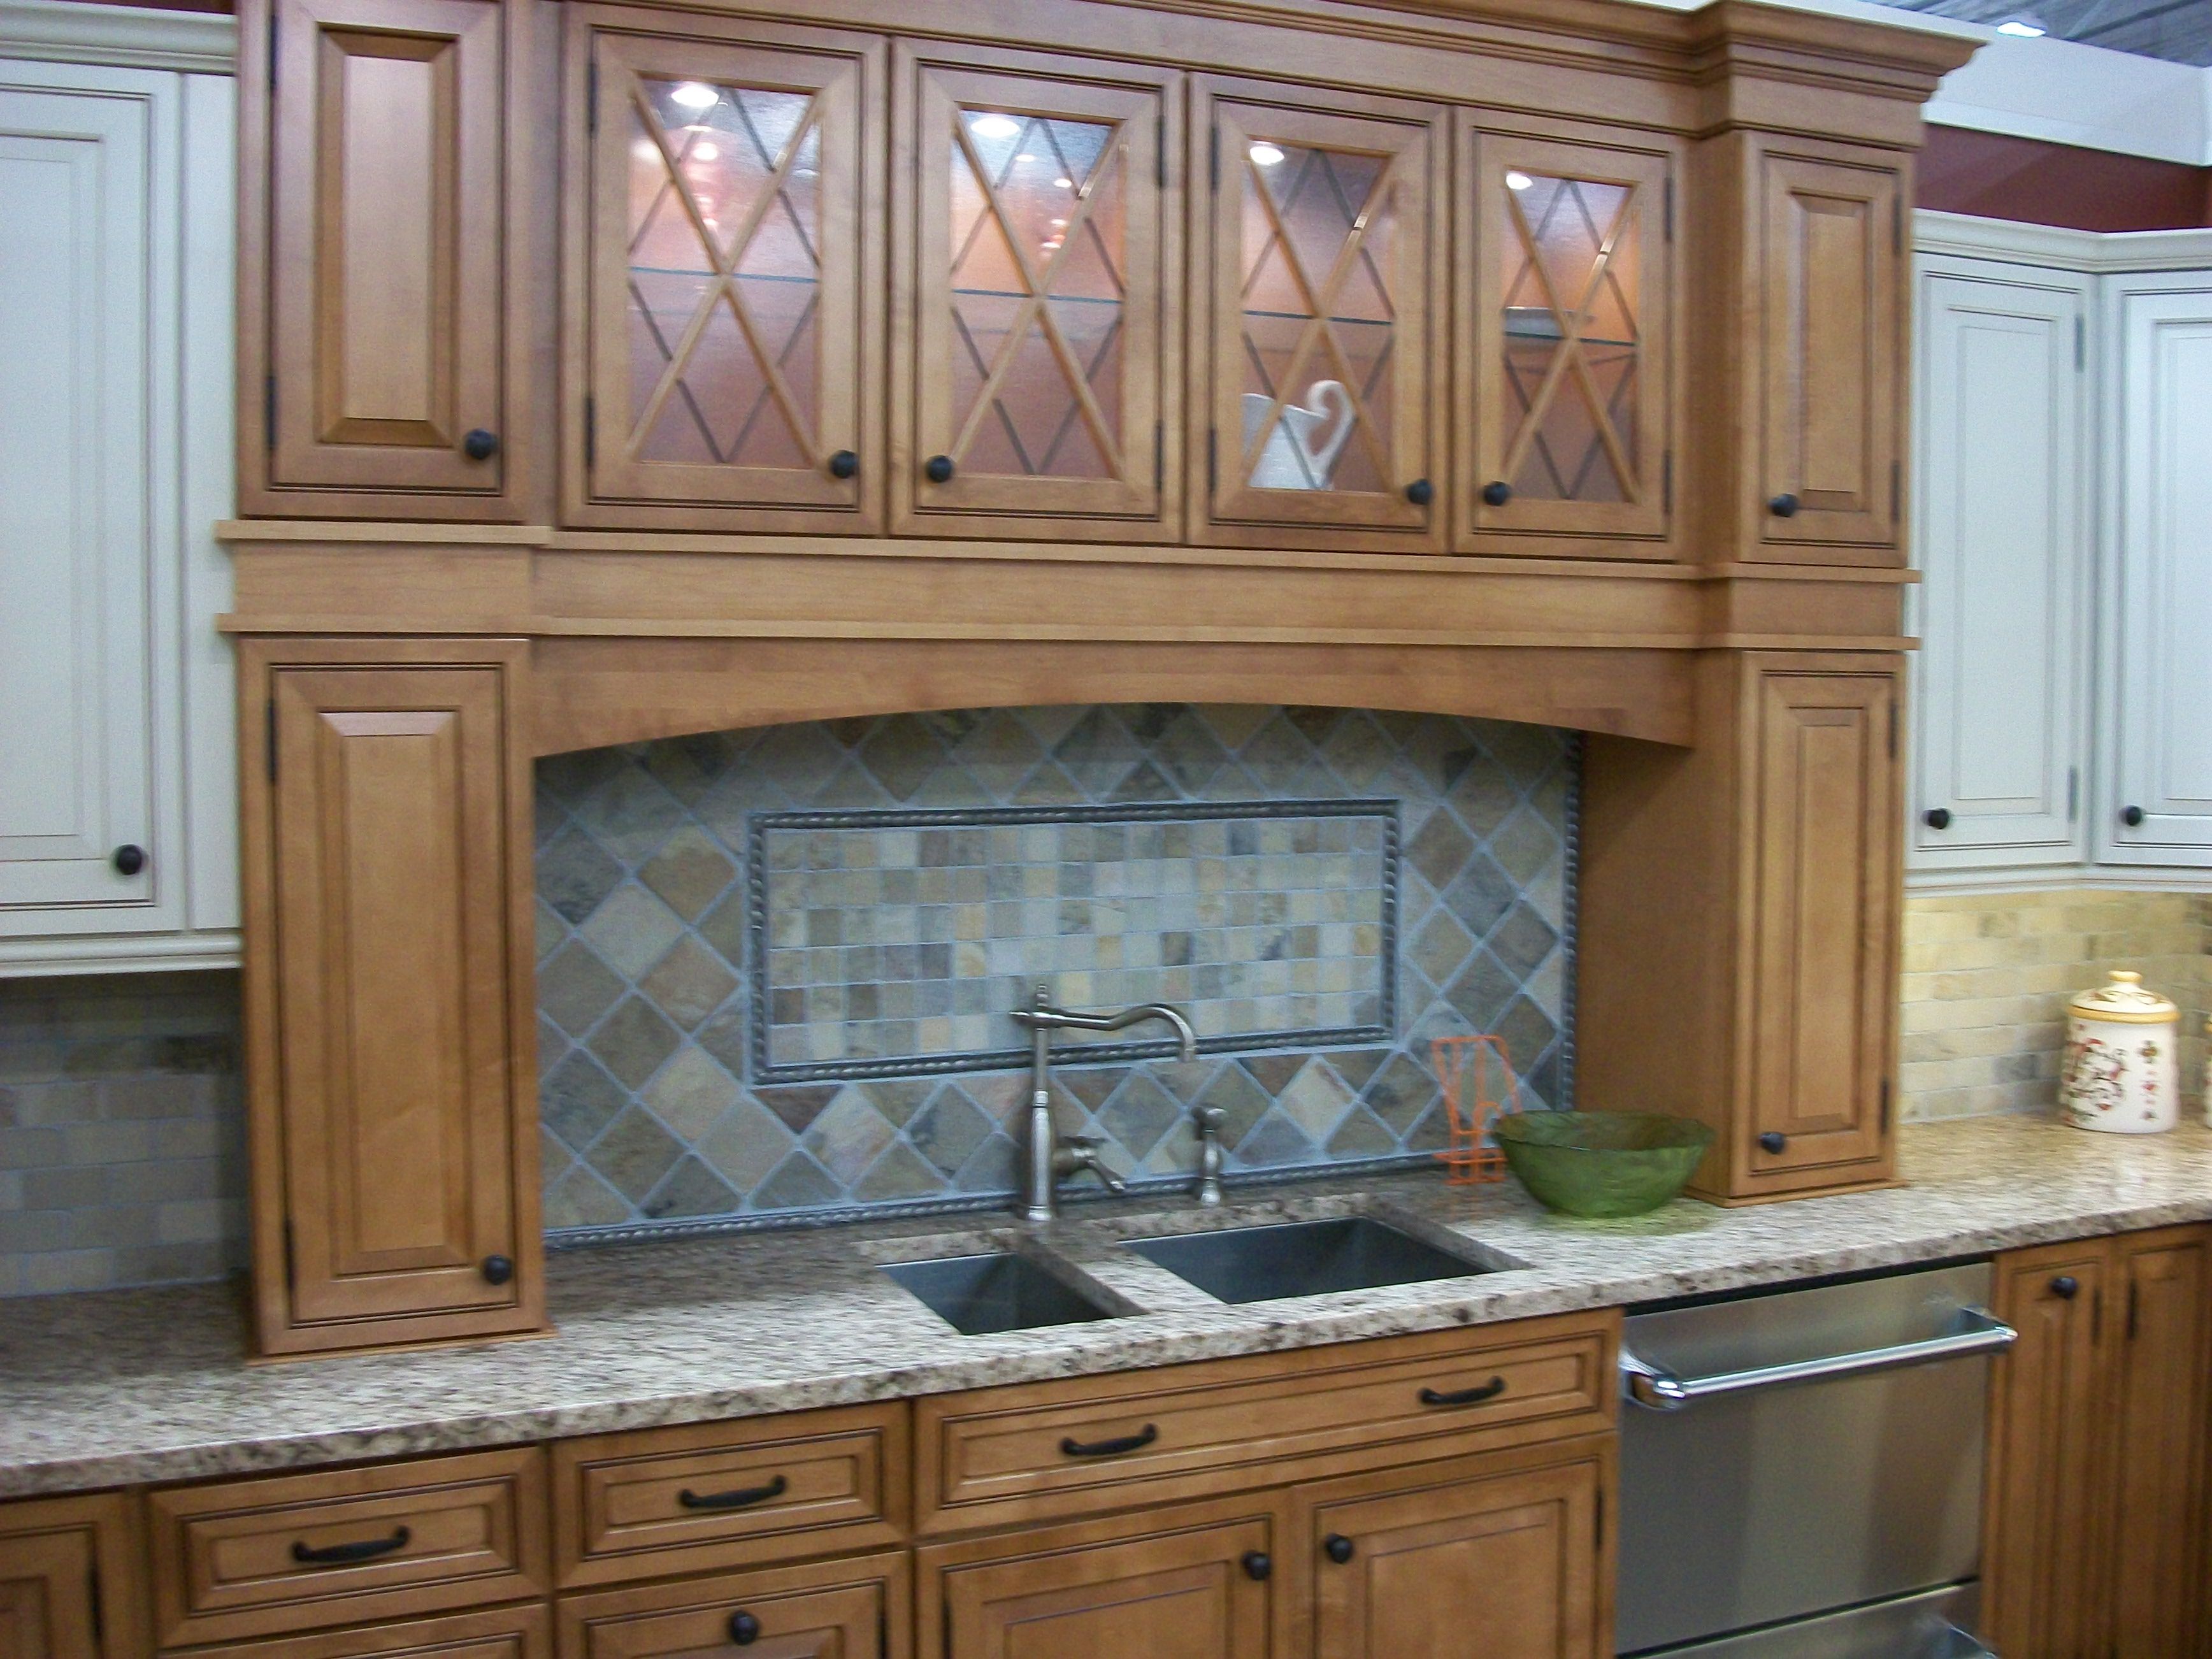 File:Kitchen Cabinet Display In 2009 In NJ